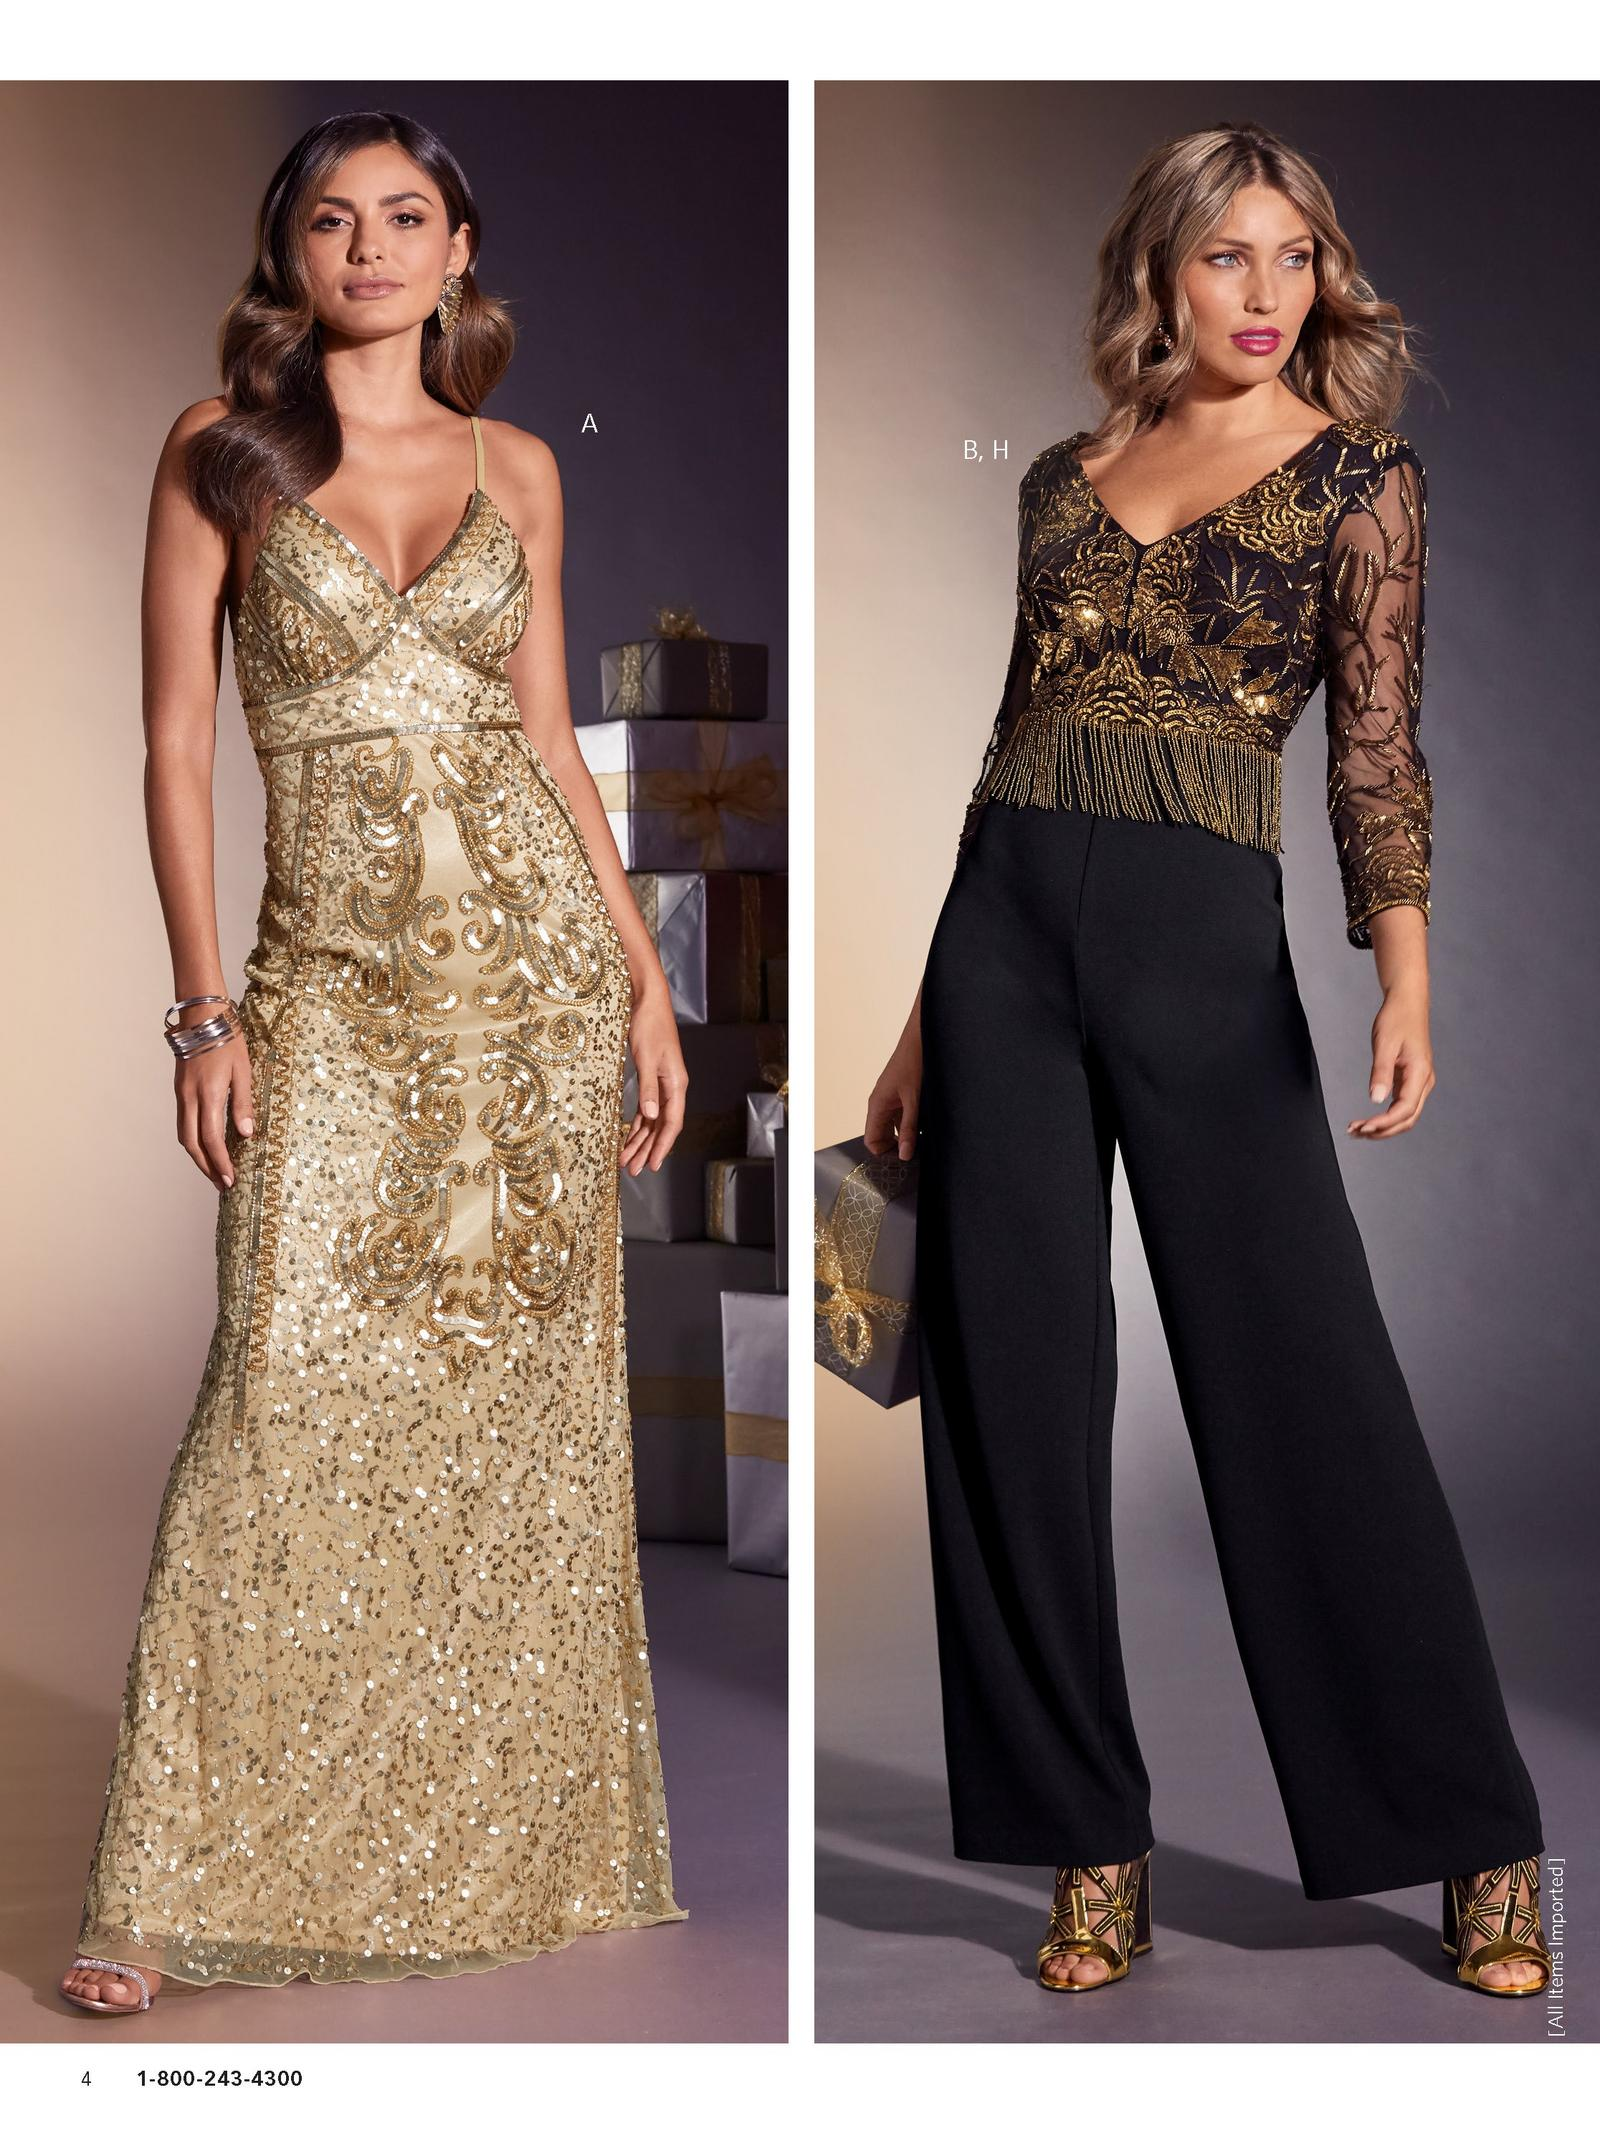 left model wearing gold embellished maxi dress. right model wearing gold fringe embellished black jumpsuit with black and gold heels.